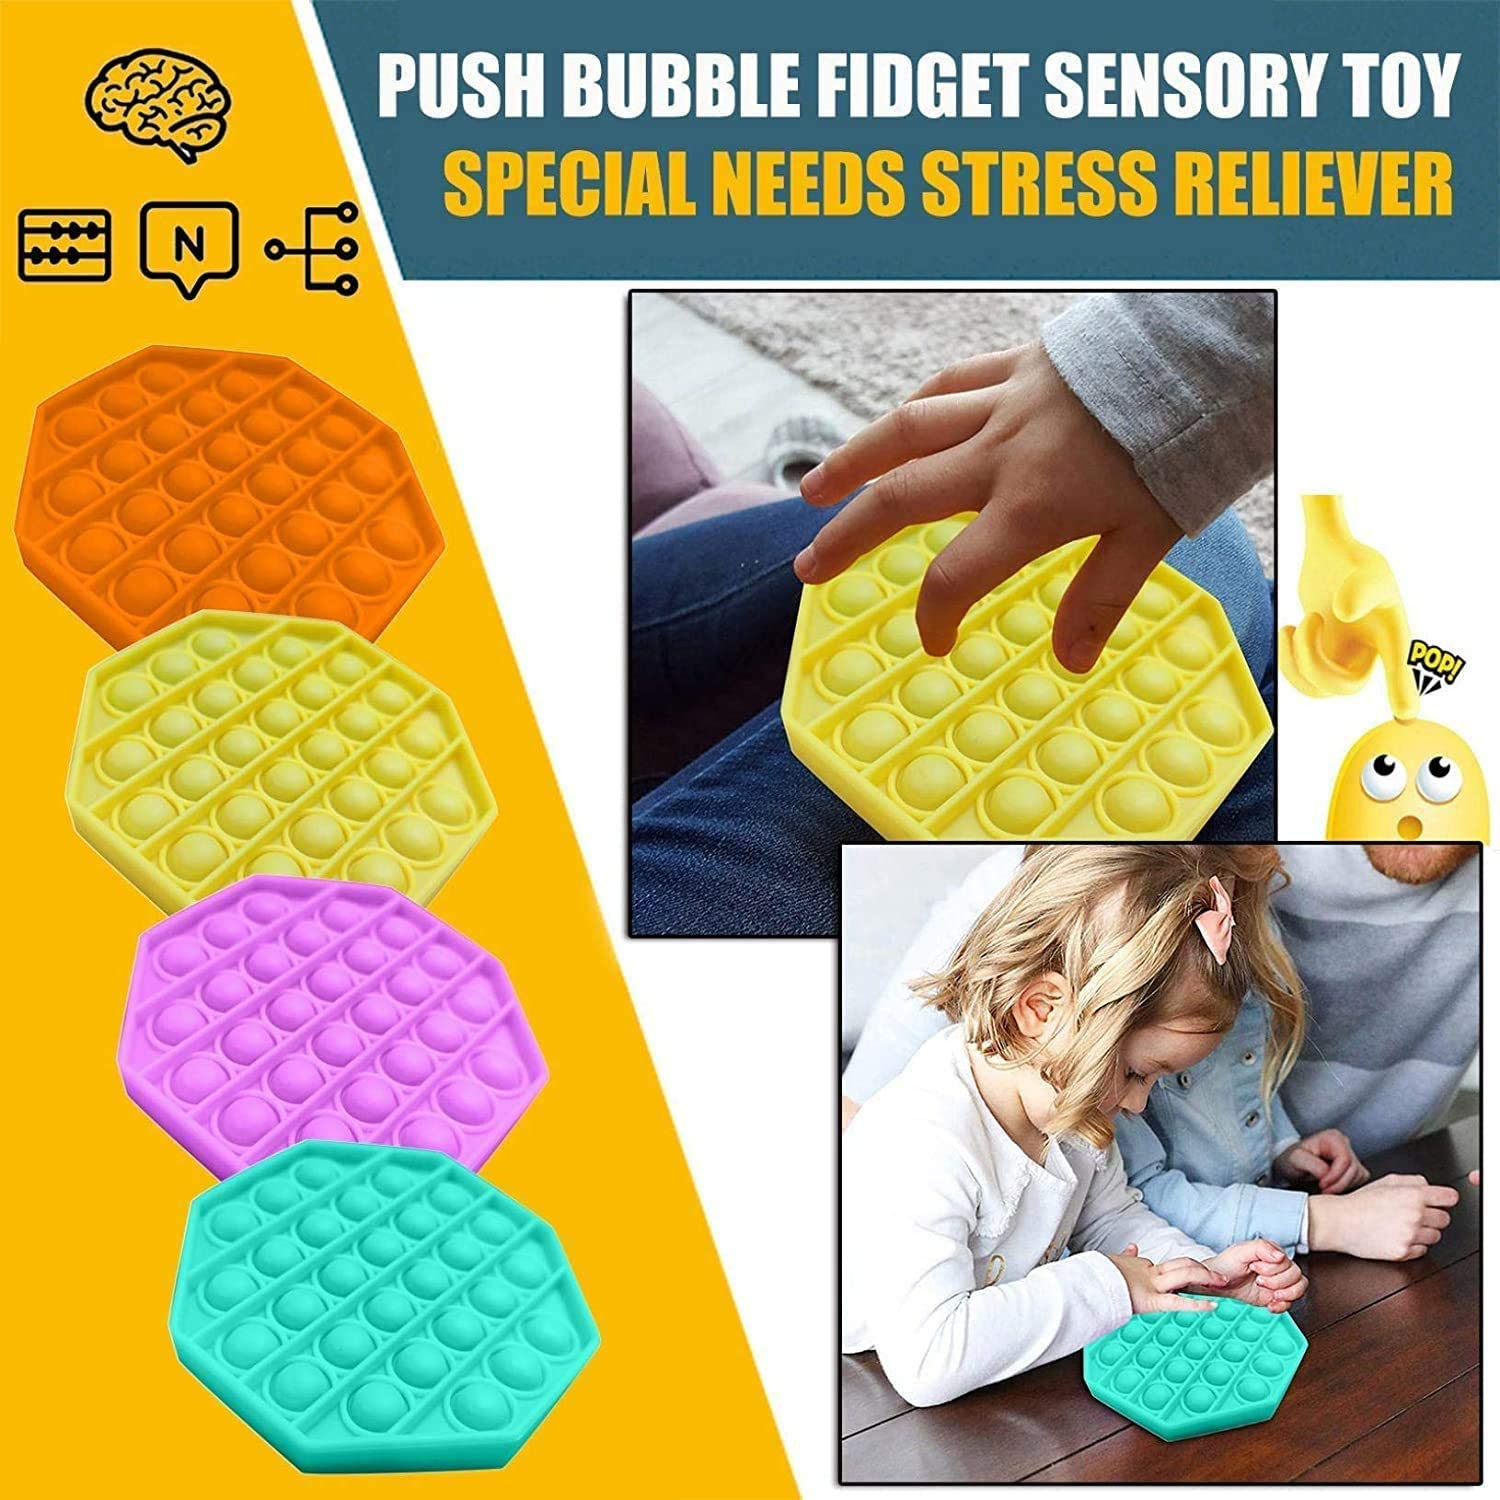 Silicone Stress Reliever Toy,Autism Special Needs Stress Reliever,for Family,Kids,Students,and Friends-SJF02 3PCS Leencum Push pop pop Bubble Sensory Fidget Toy,Squeeze Sensory Toy